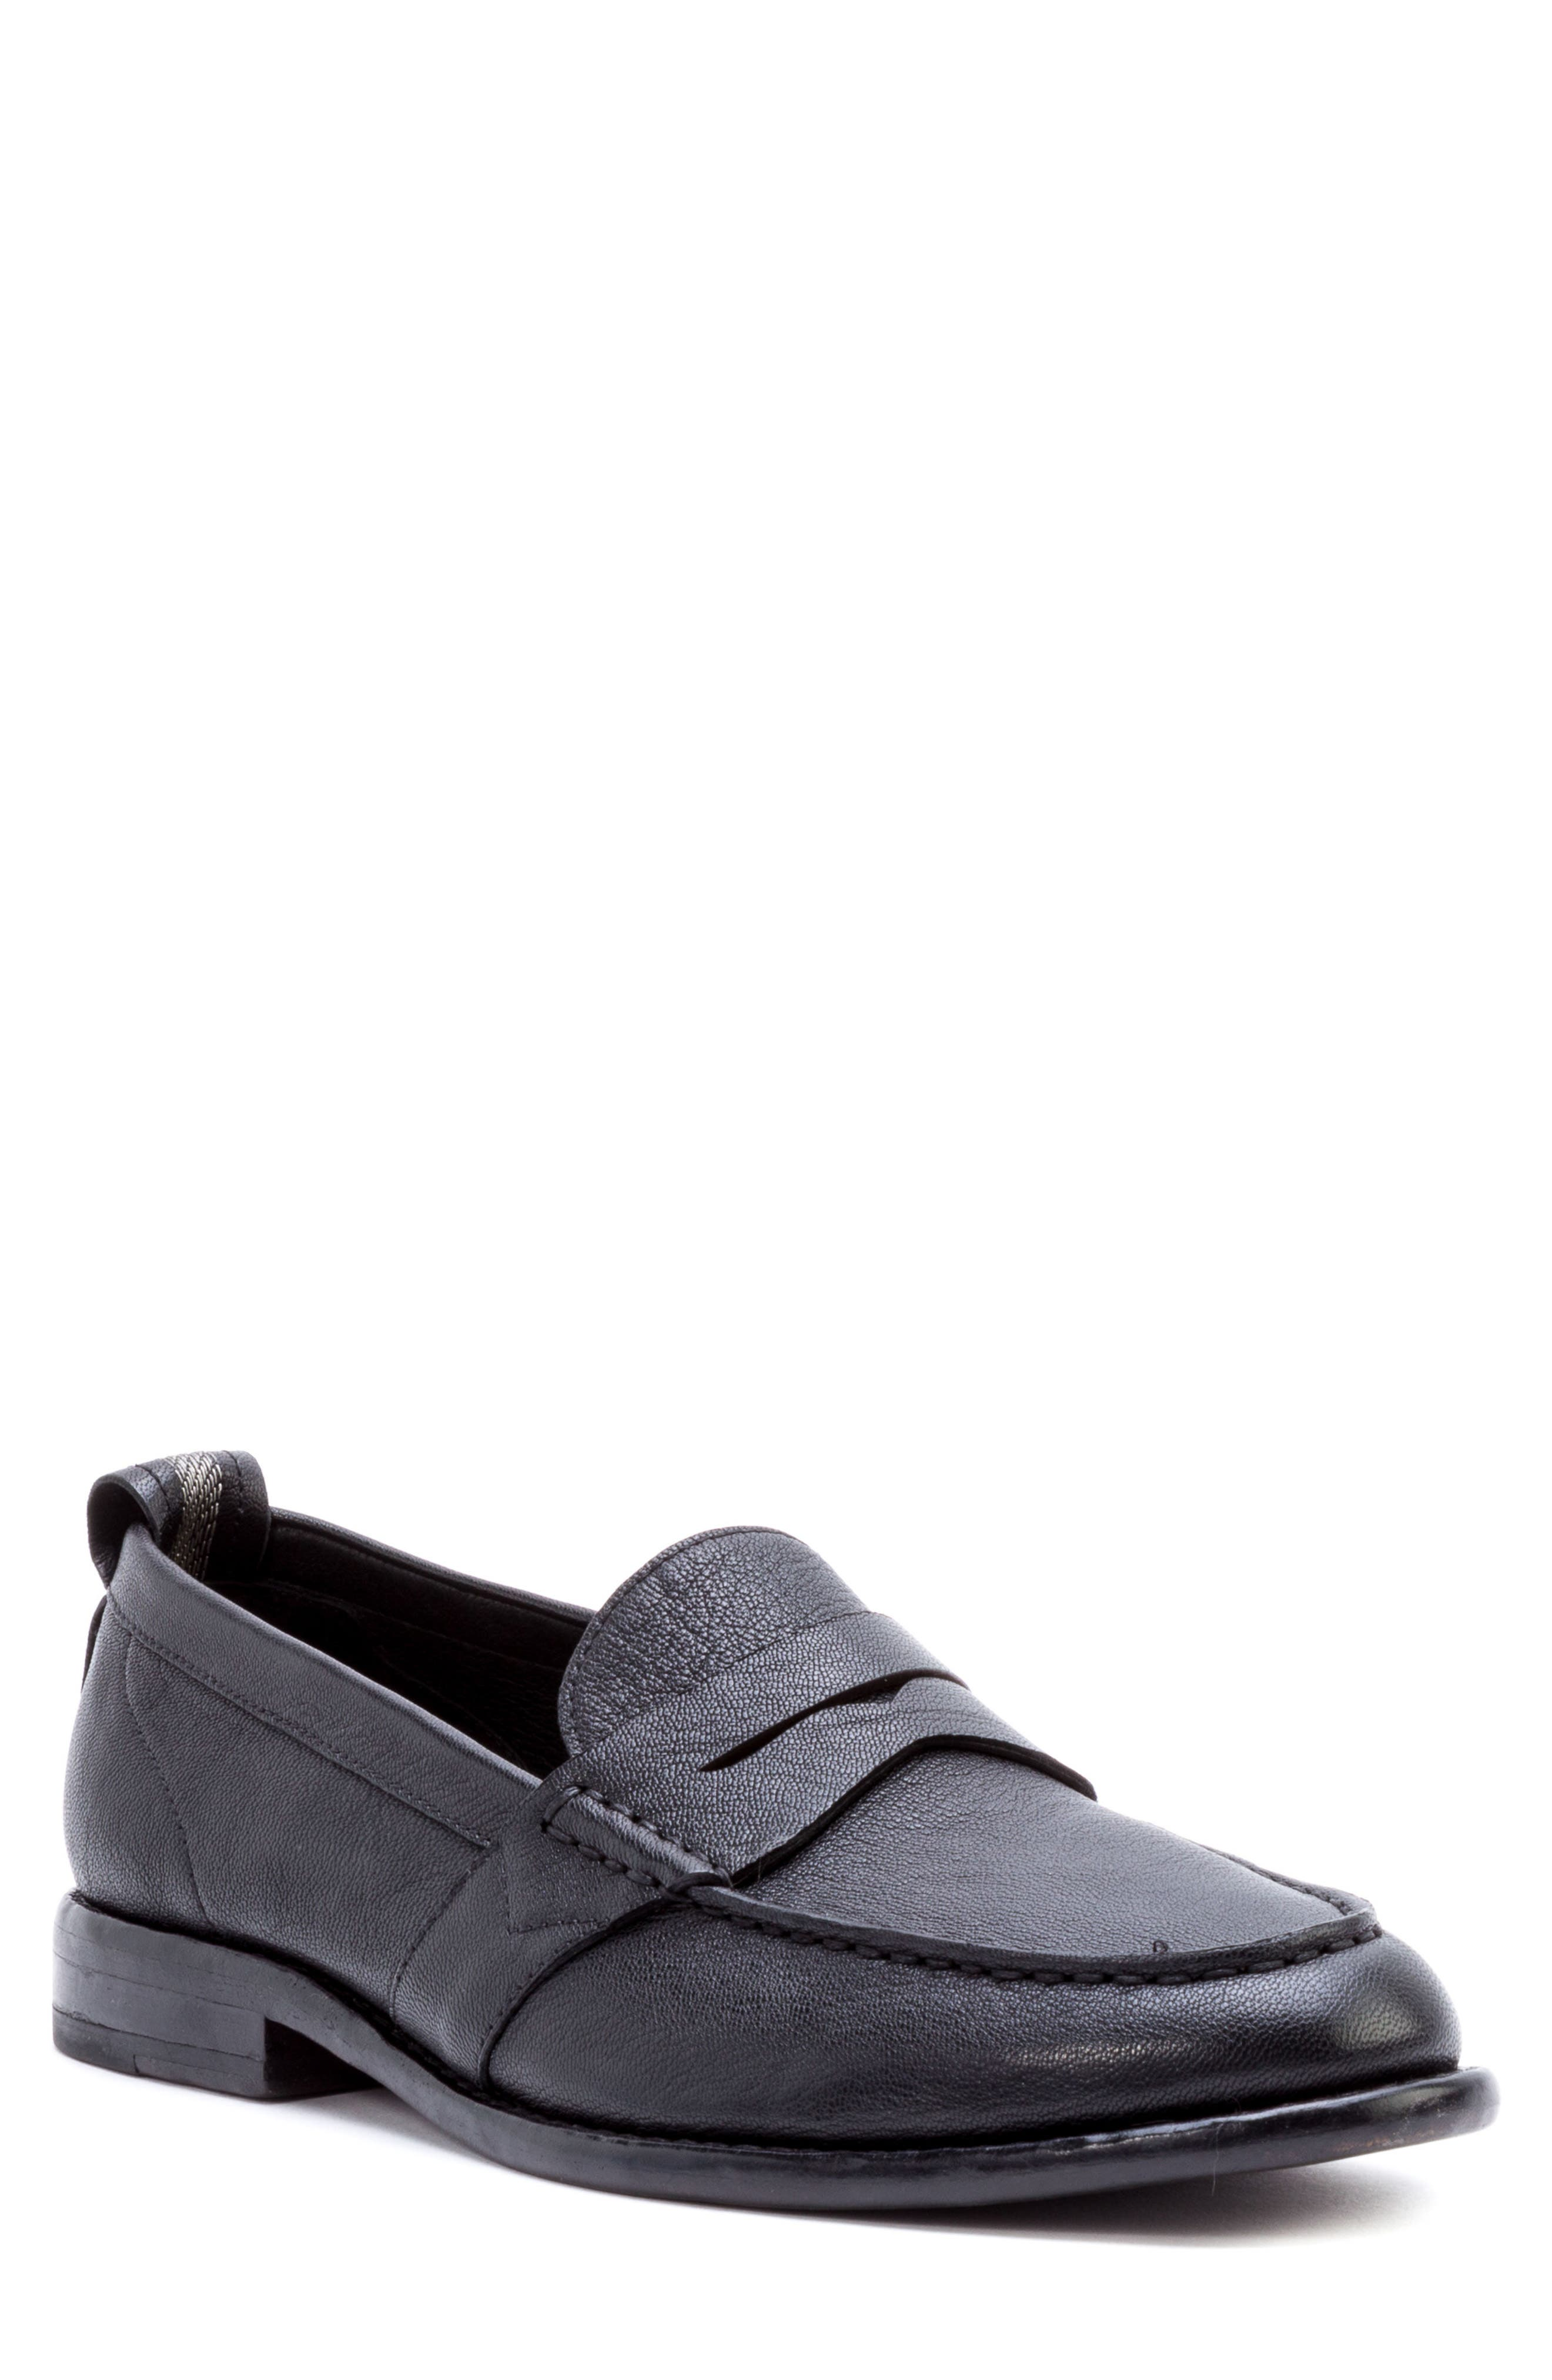 Torres Penny Loafer,                             Main thumbnail 1, color,                             001